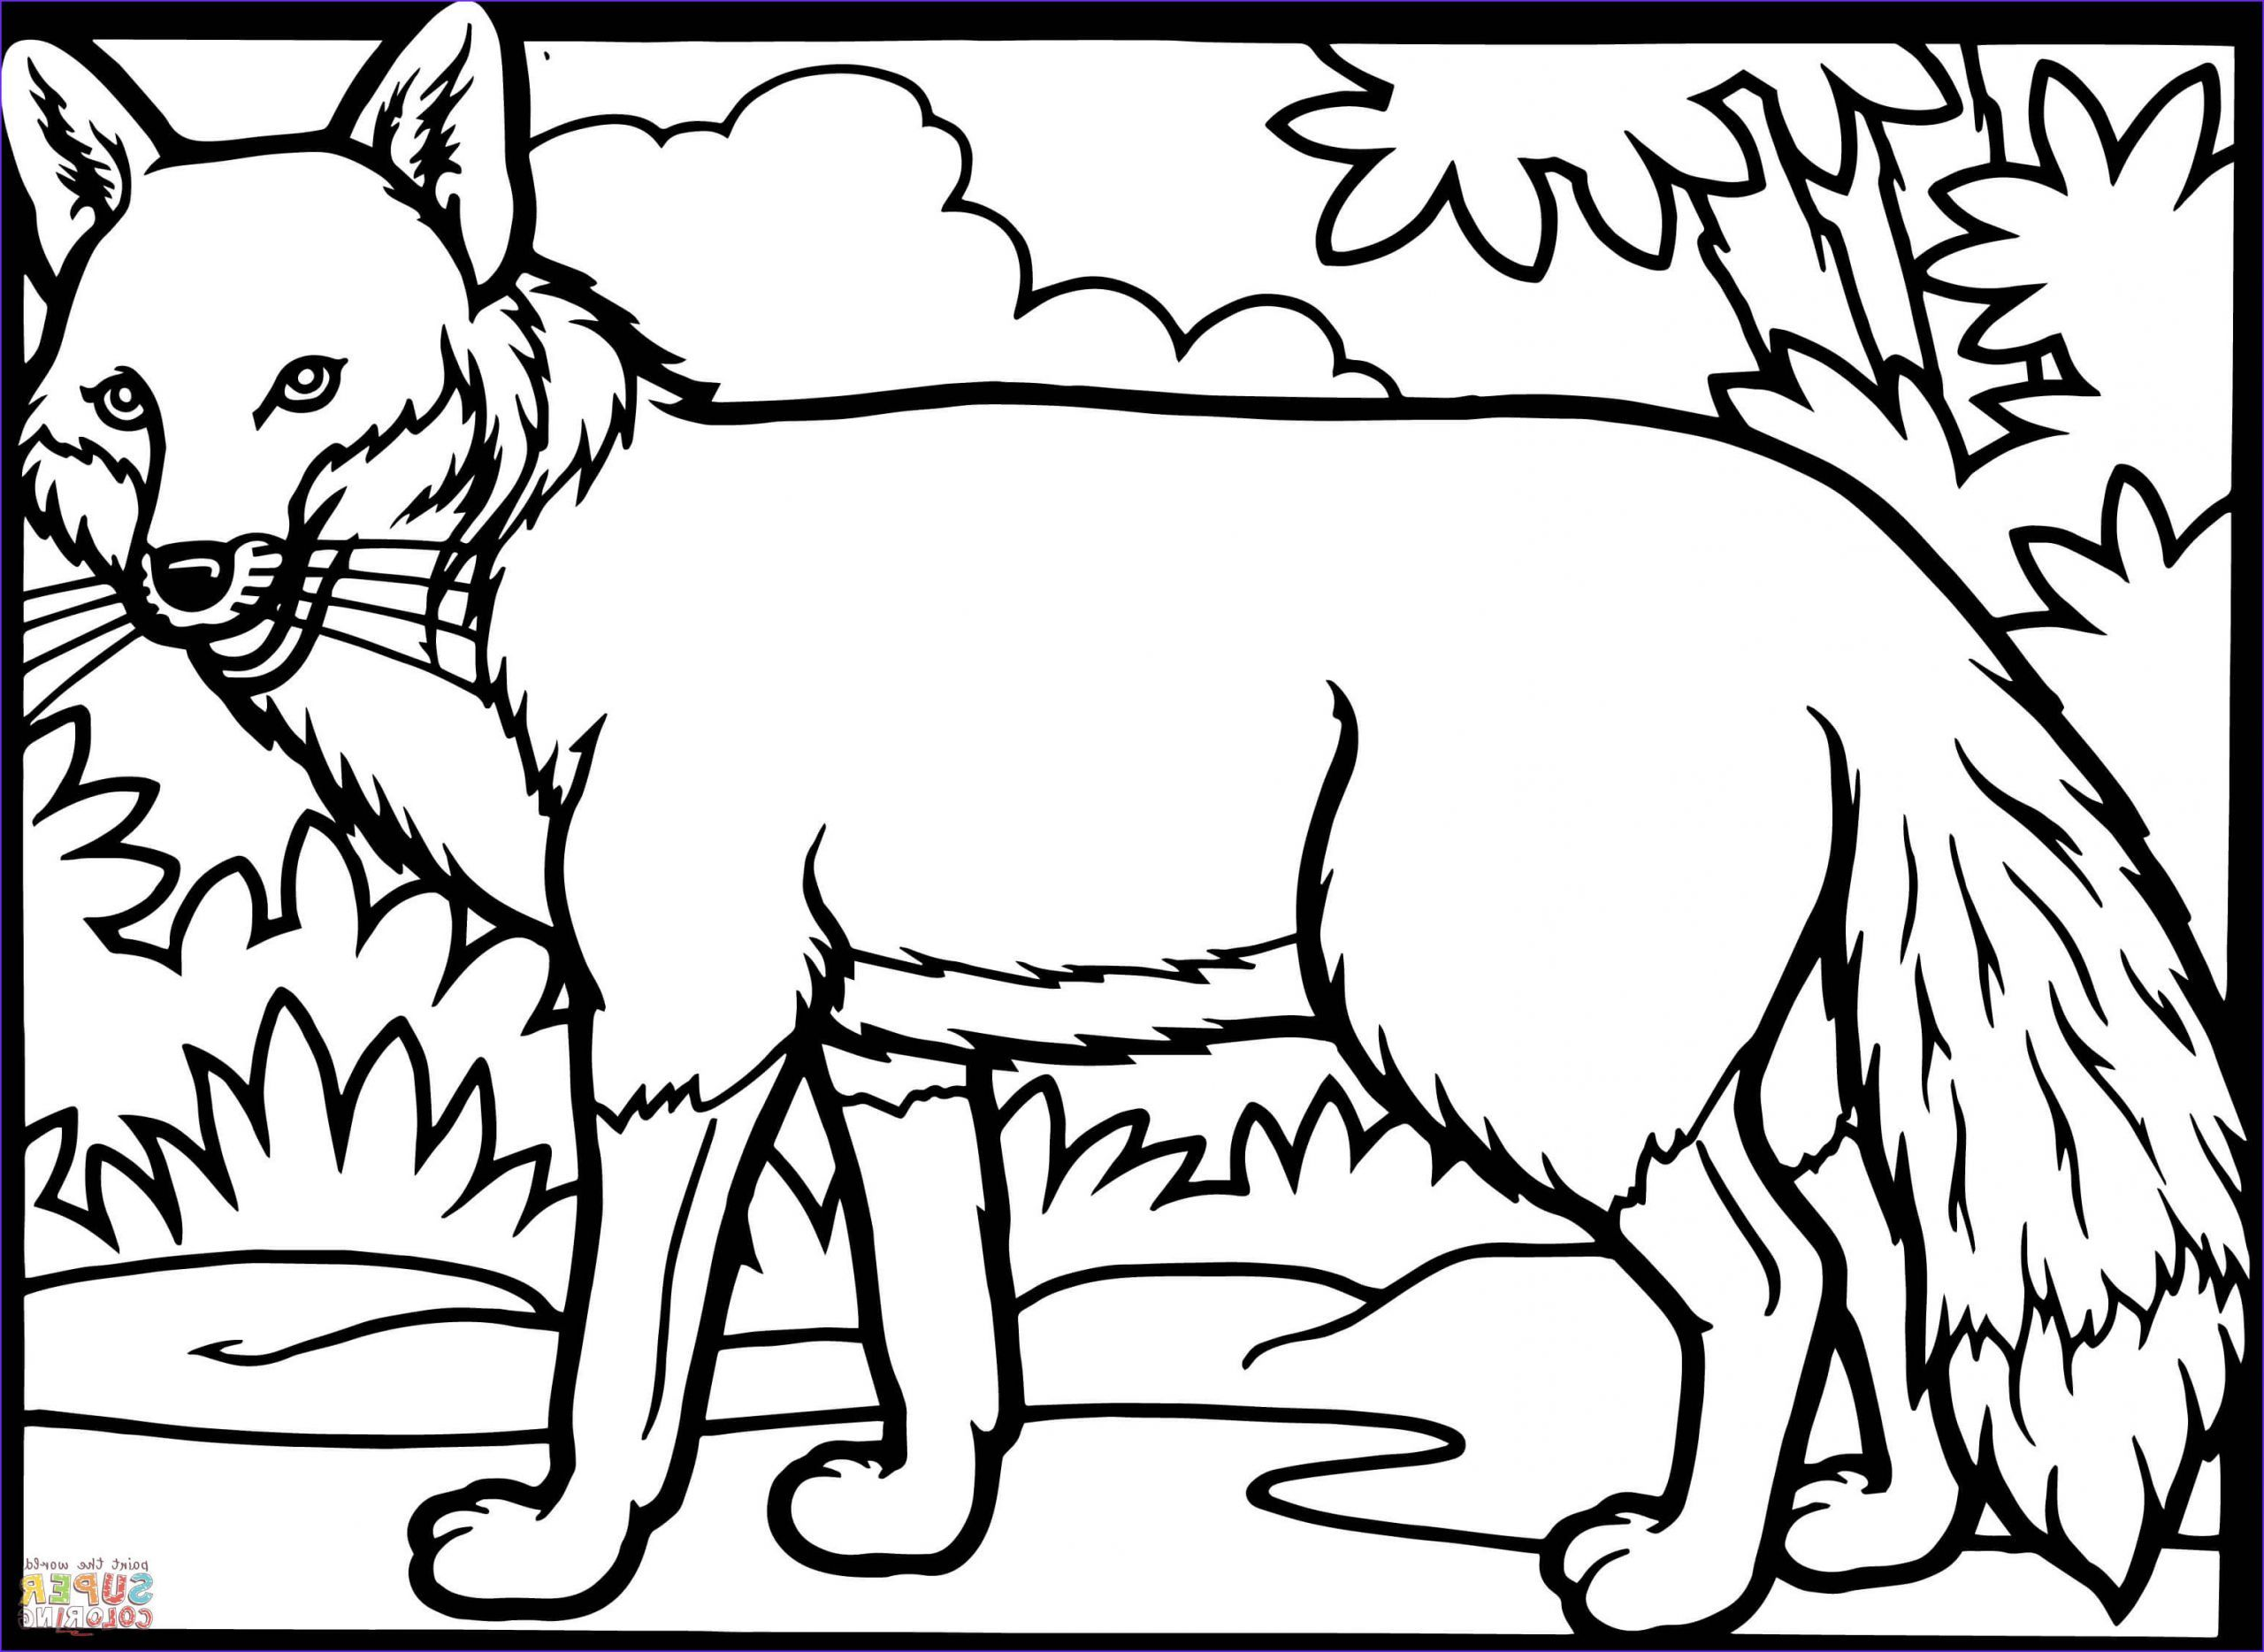 45 Cool Image Of Fox Coloring Sheet In 2020 Coloring Sheets